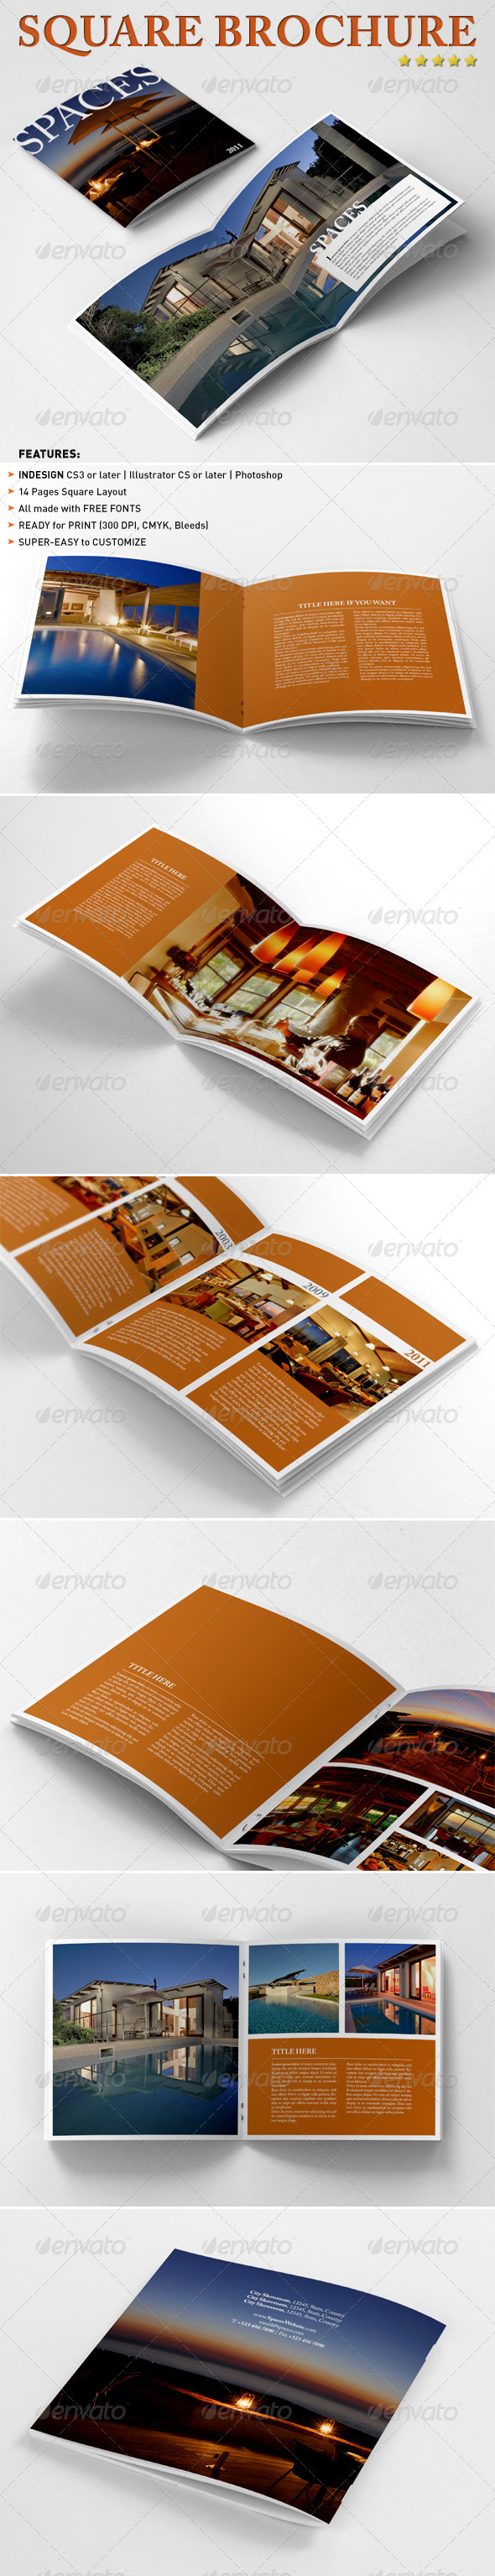 Square Brochure / Booklet - Corporate Brochures